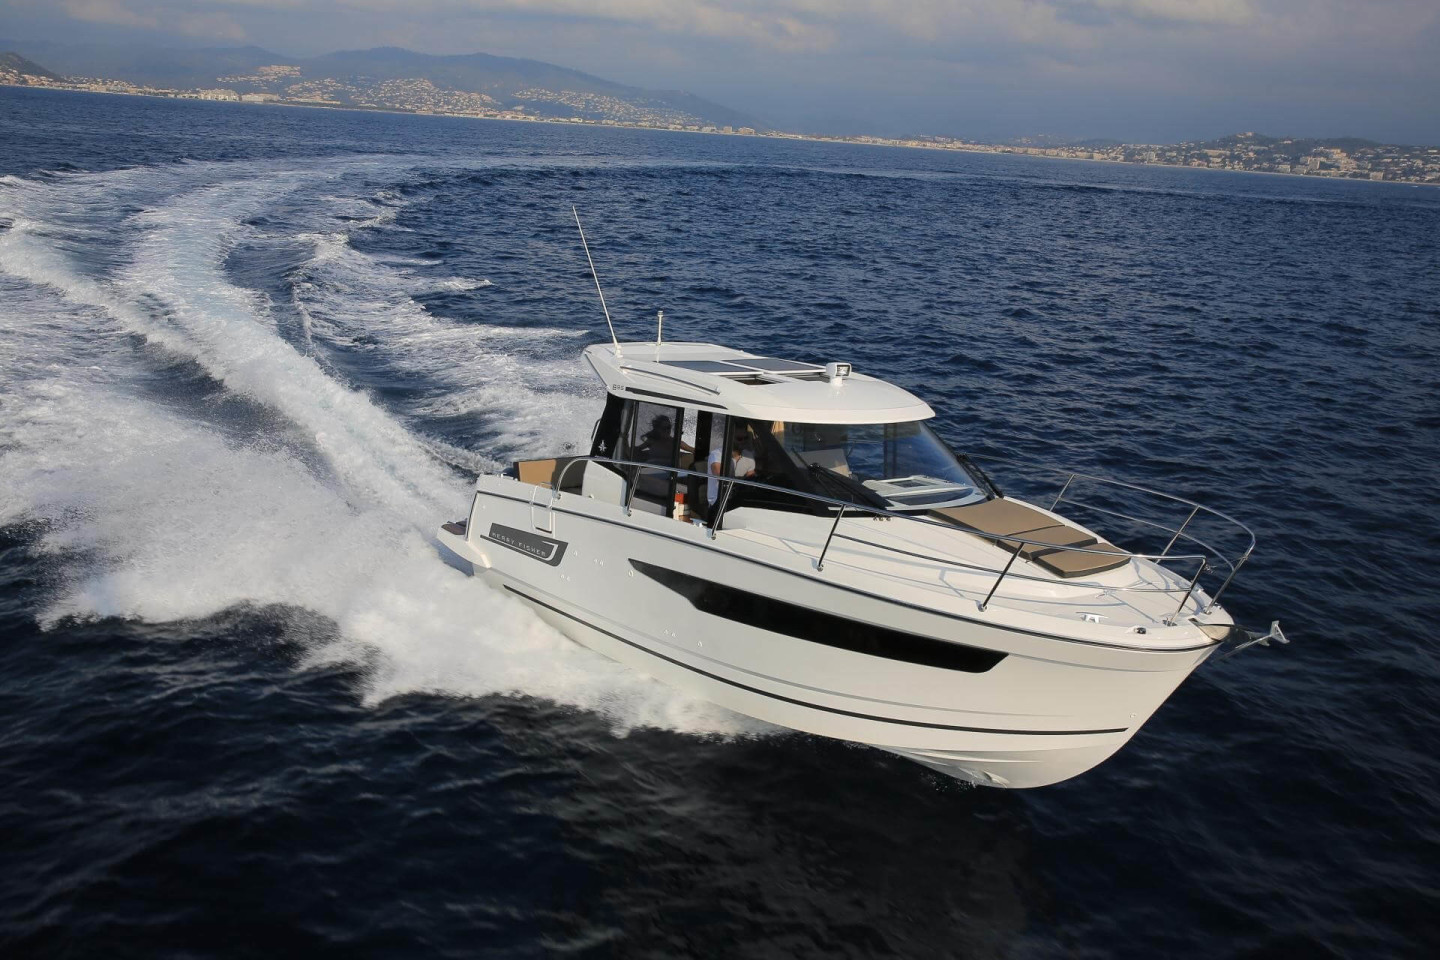 Jeanneau Merry Fisher 895 1 croatia yach rental cruise paddle surfing comfort pula istria